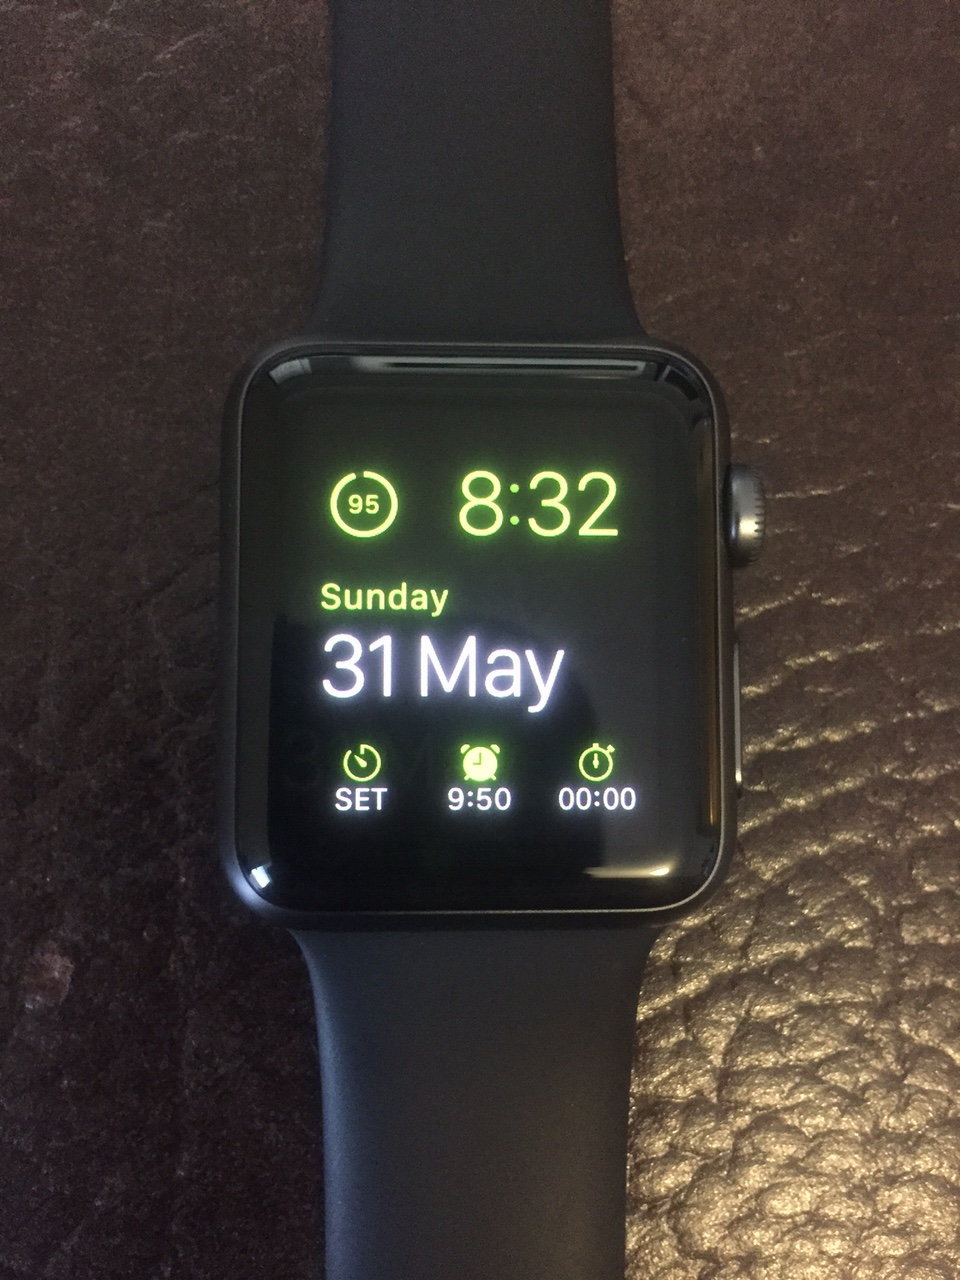 My Apple Watch with the modular watch face.